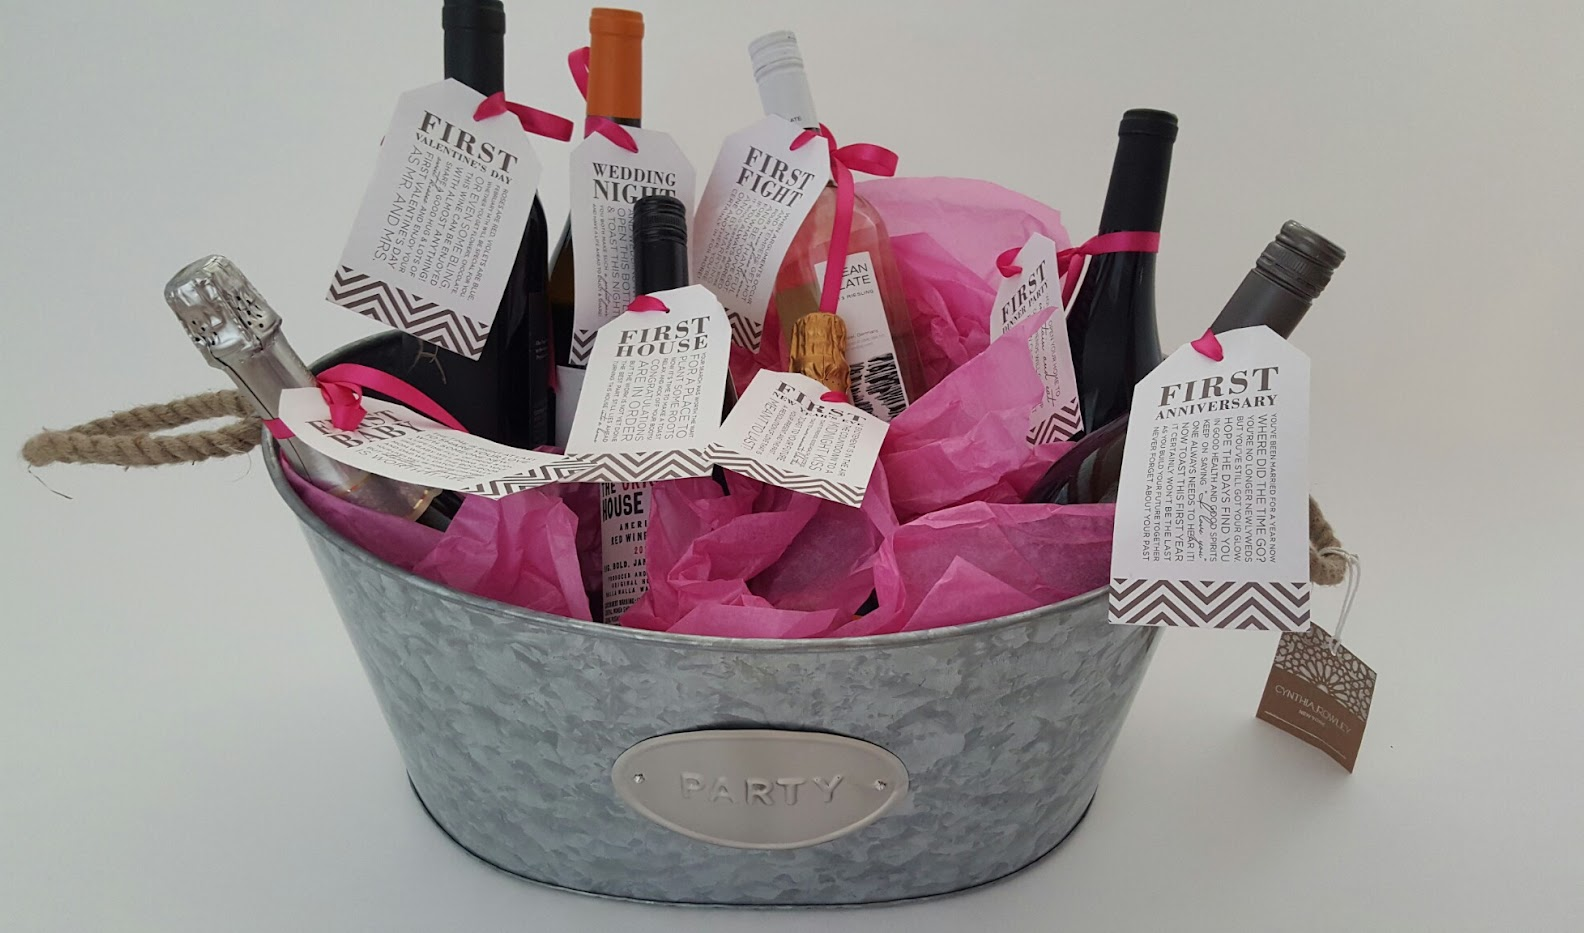 Wedding Gift For Bride To Be : How to make a Firsts Bride-to-be gift basket: